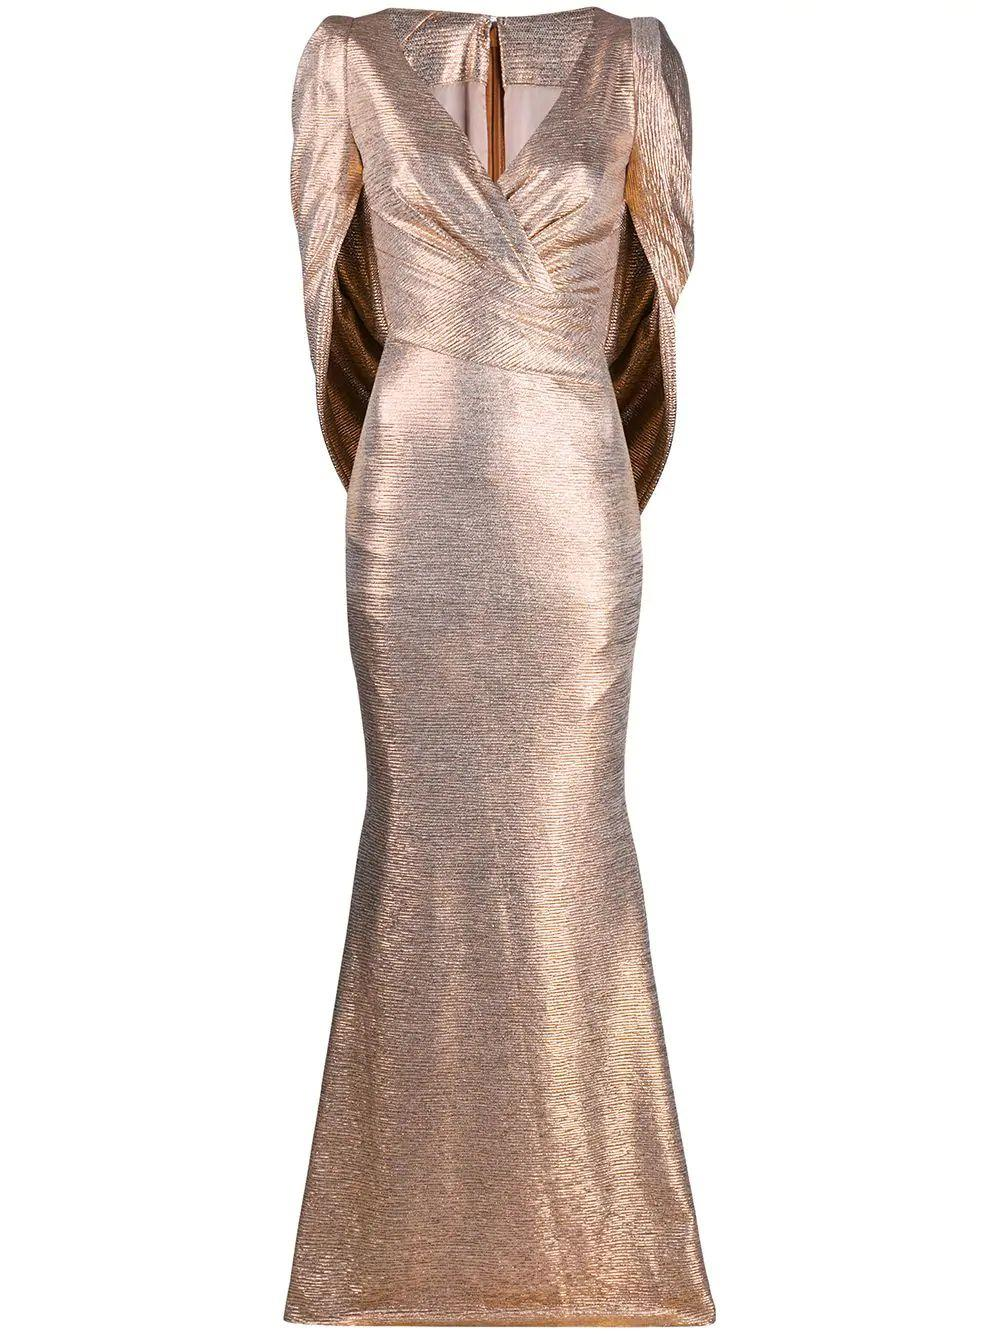 Mirrorball Stretch Gown With Connected Sleeve Item # ROSIN12